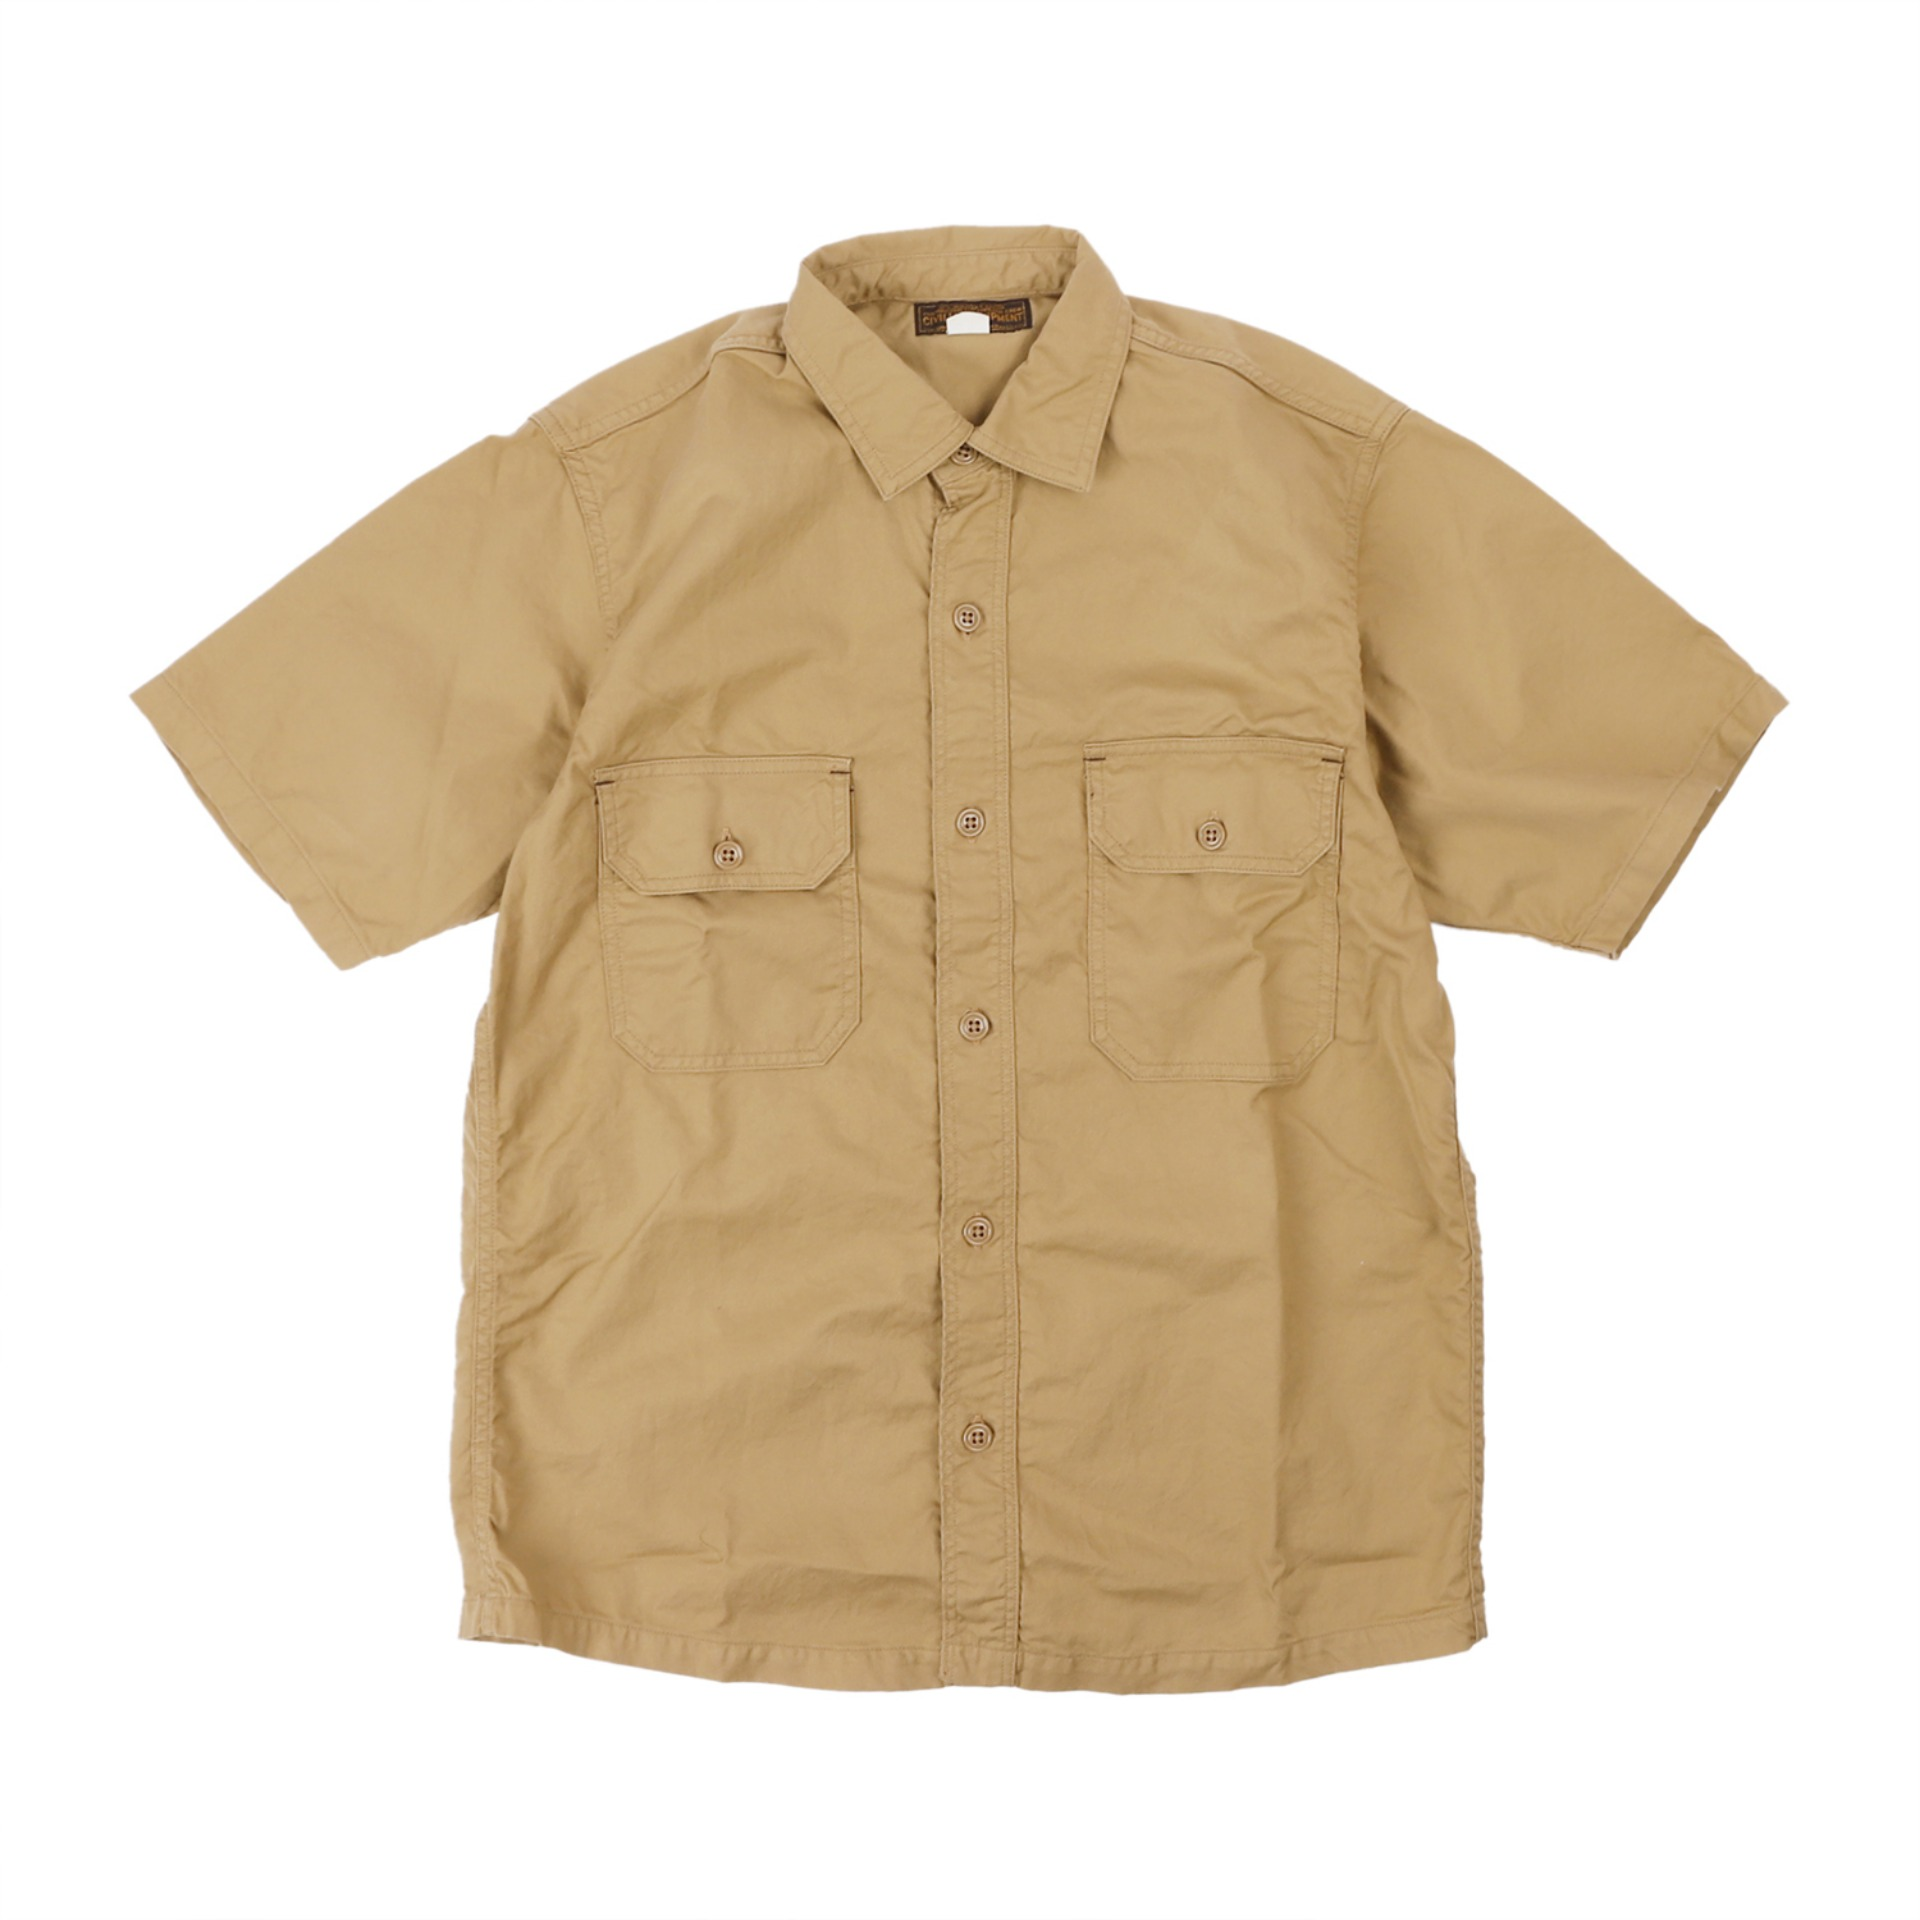 [The Union Special Overalls]CIVILIAN MILITARY  SHIRTSUTILITY SHORT SLEEVE SHIRT(BEIGE)